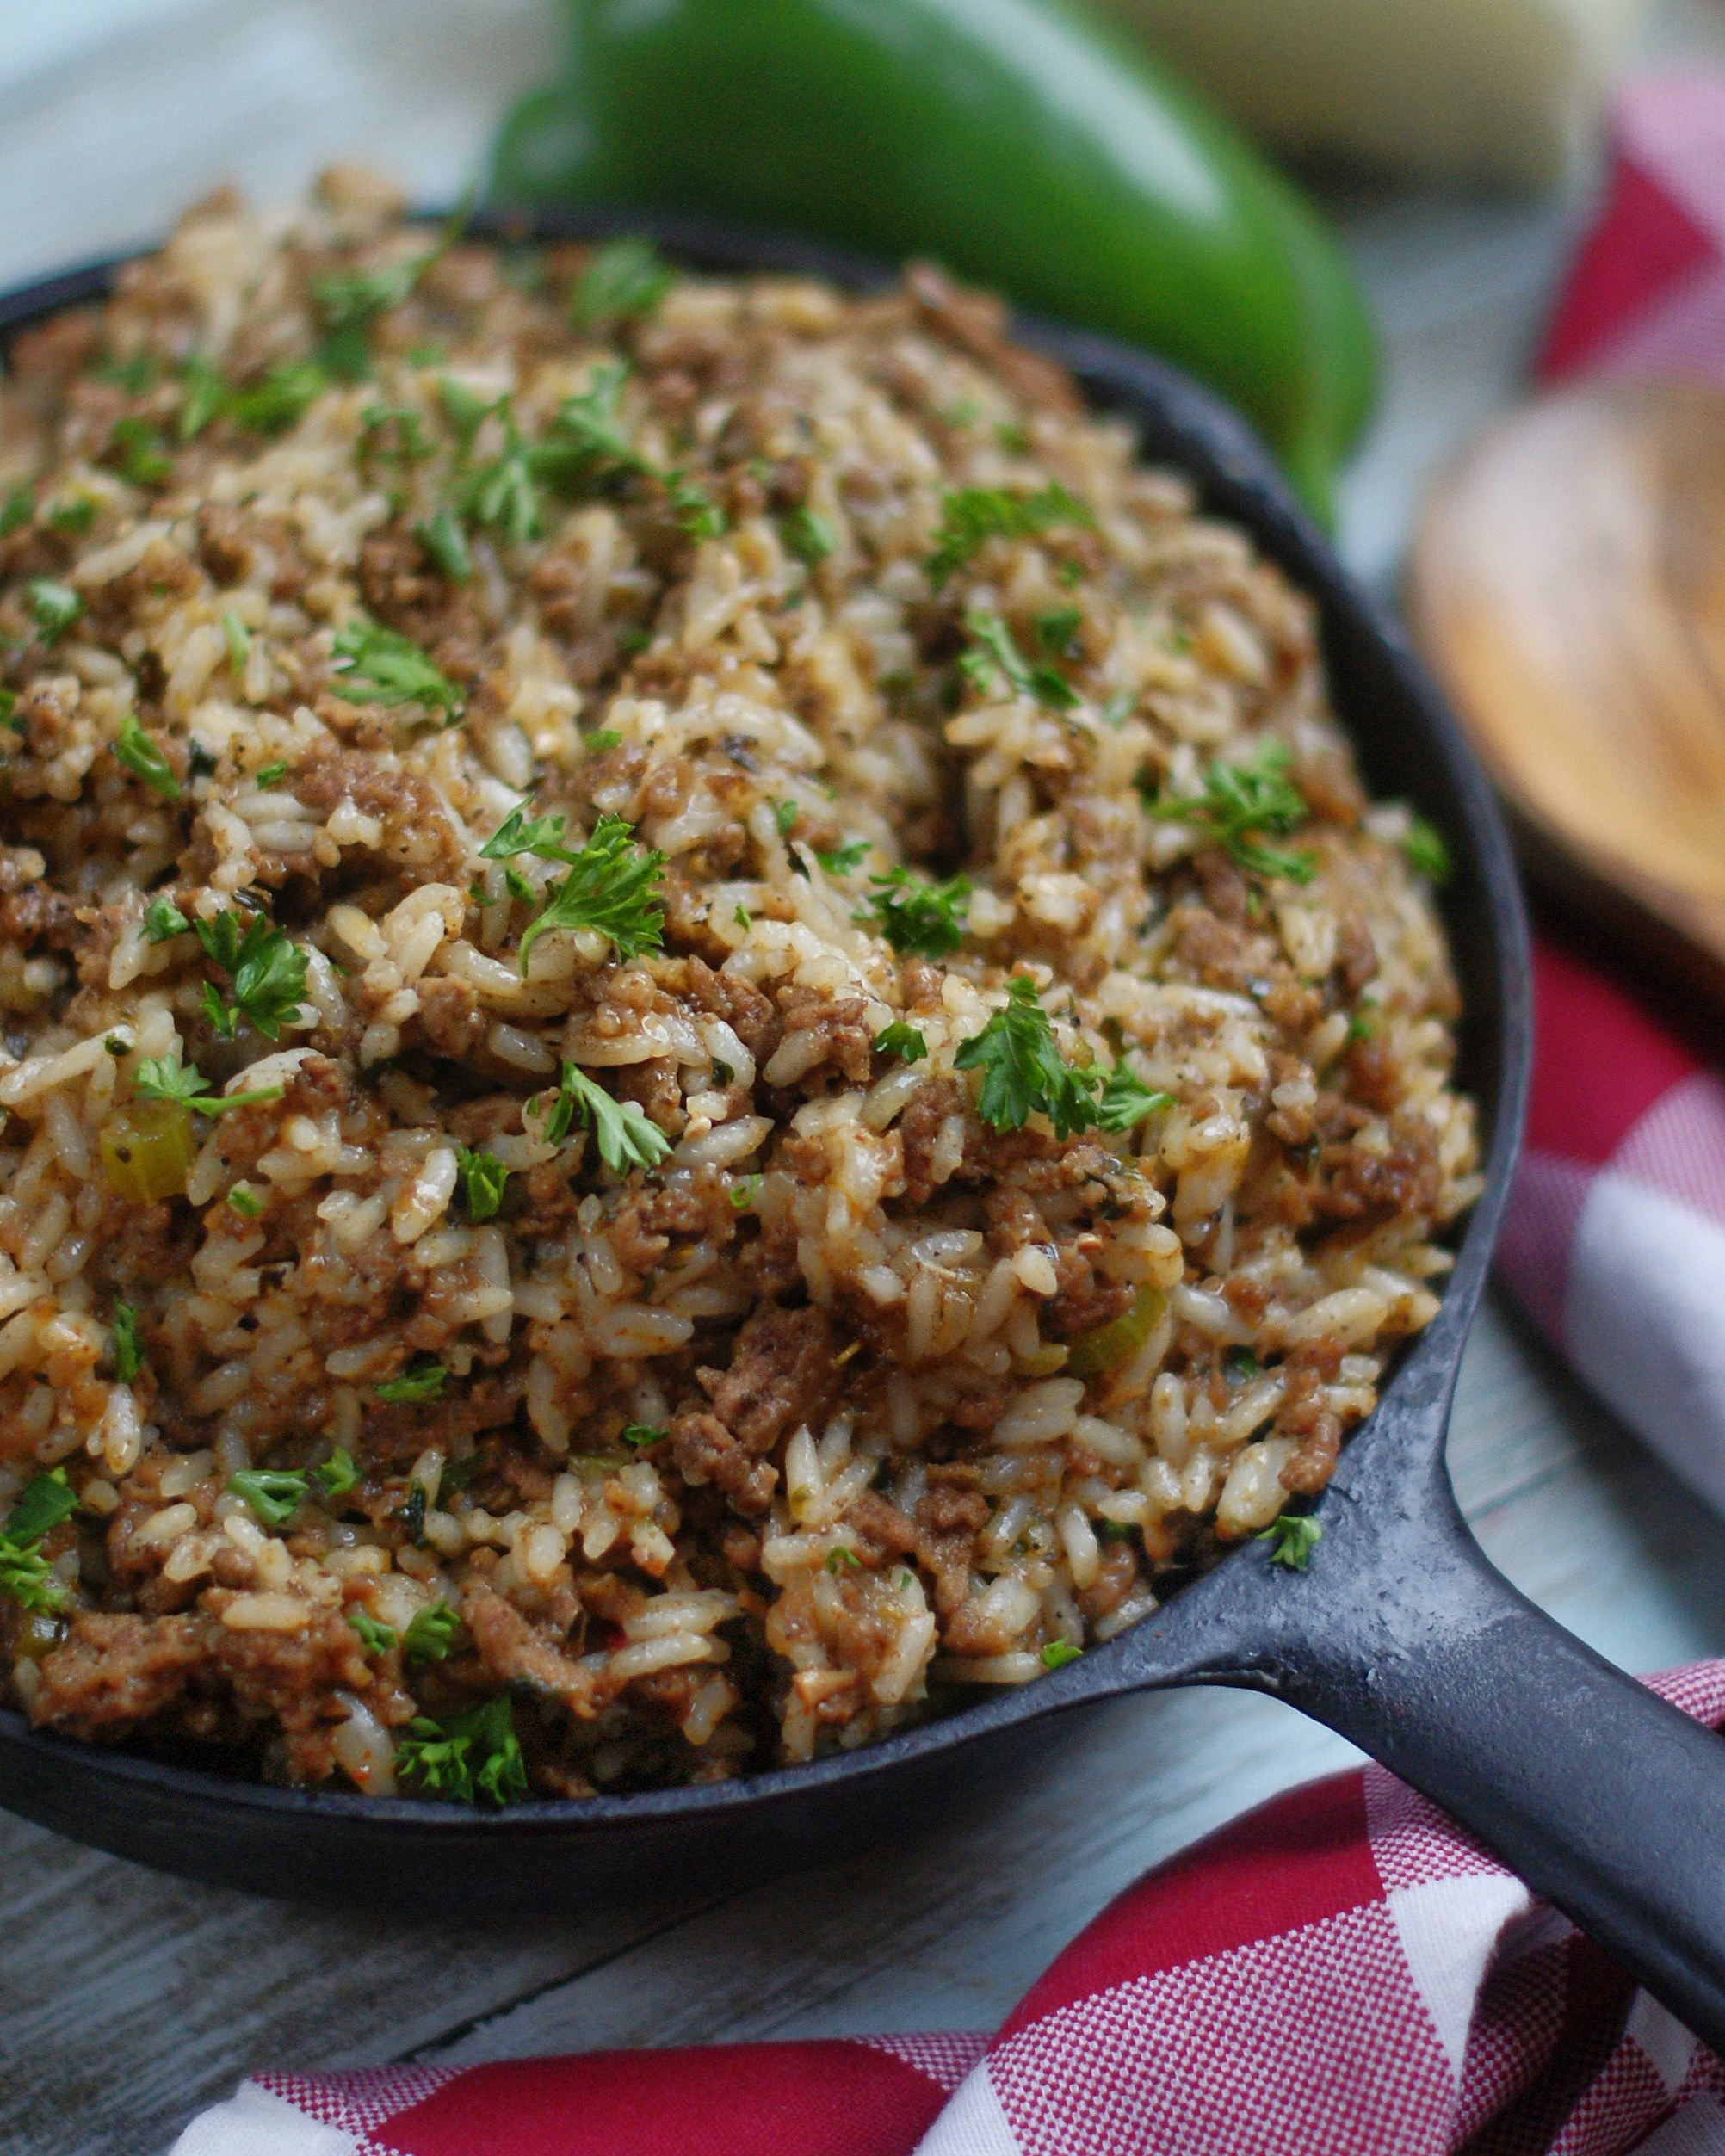 An upclose of Louisiana dirty rice in a cast iron skillet.